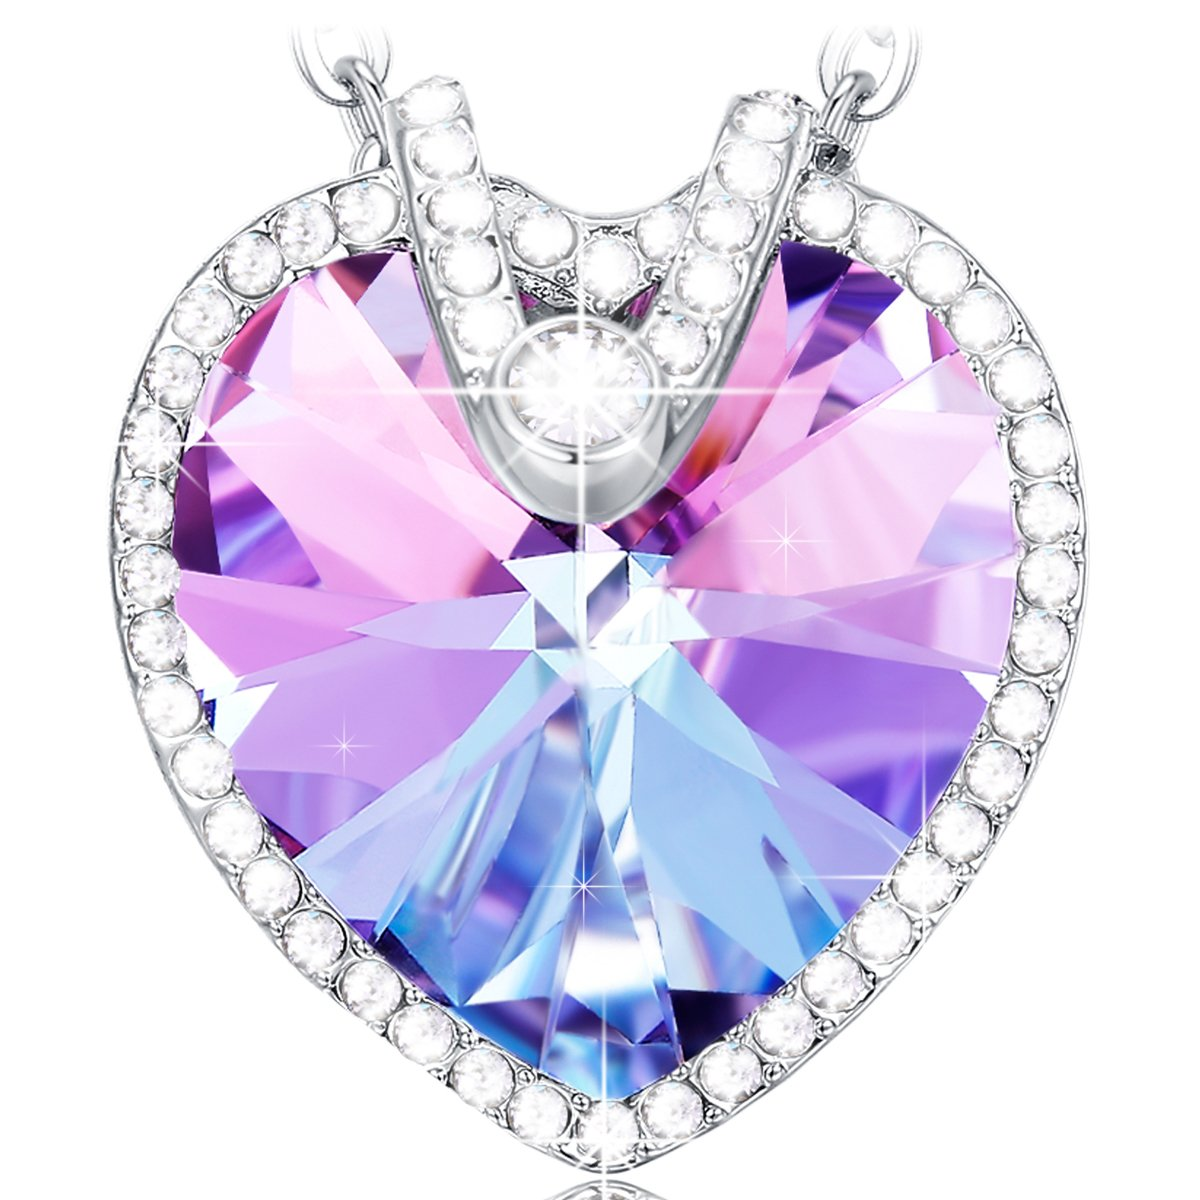 NEEMODA Heart Necklace for Women Crystal Pendant Jewelry Gifts for Her Girls Birthday Anniversary Valentines Mothers Day